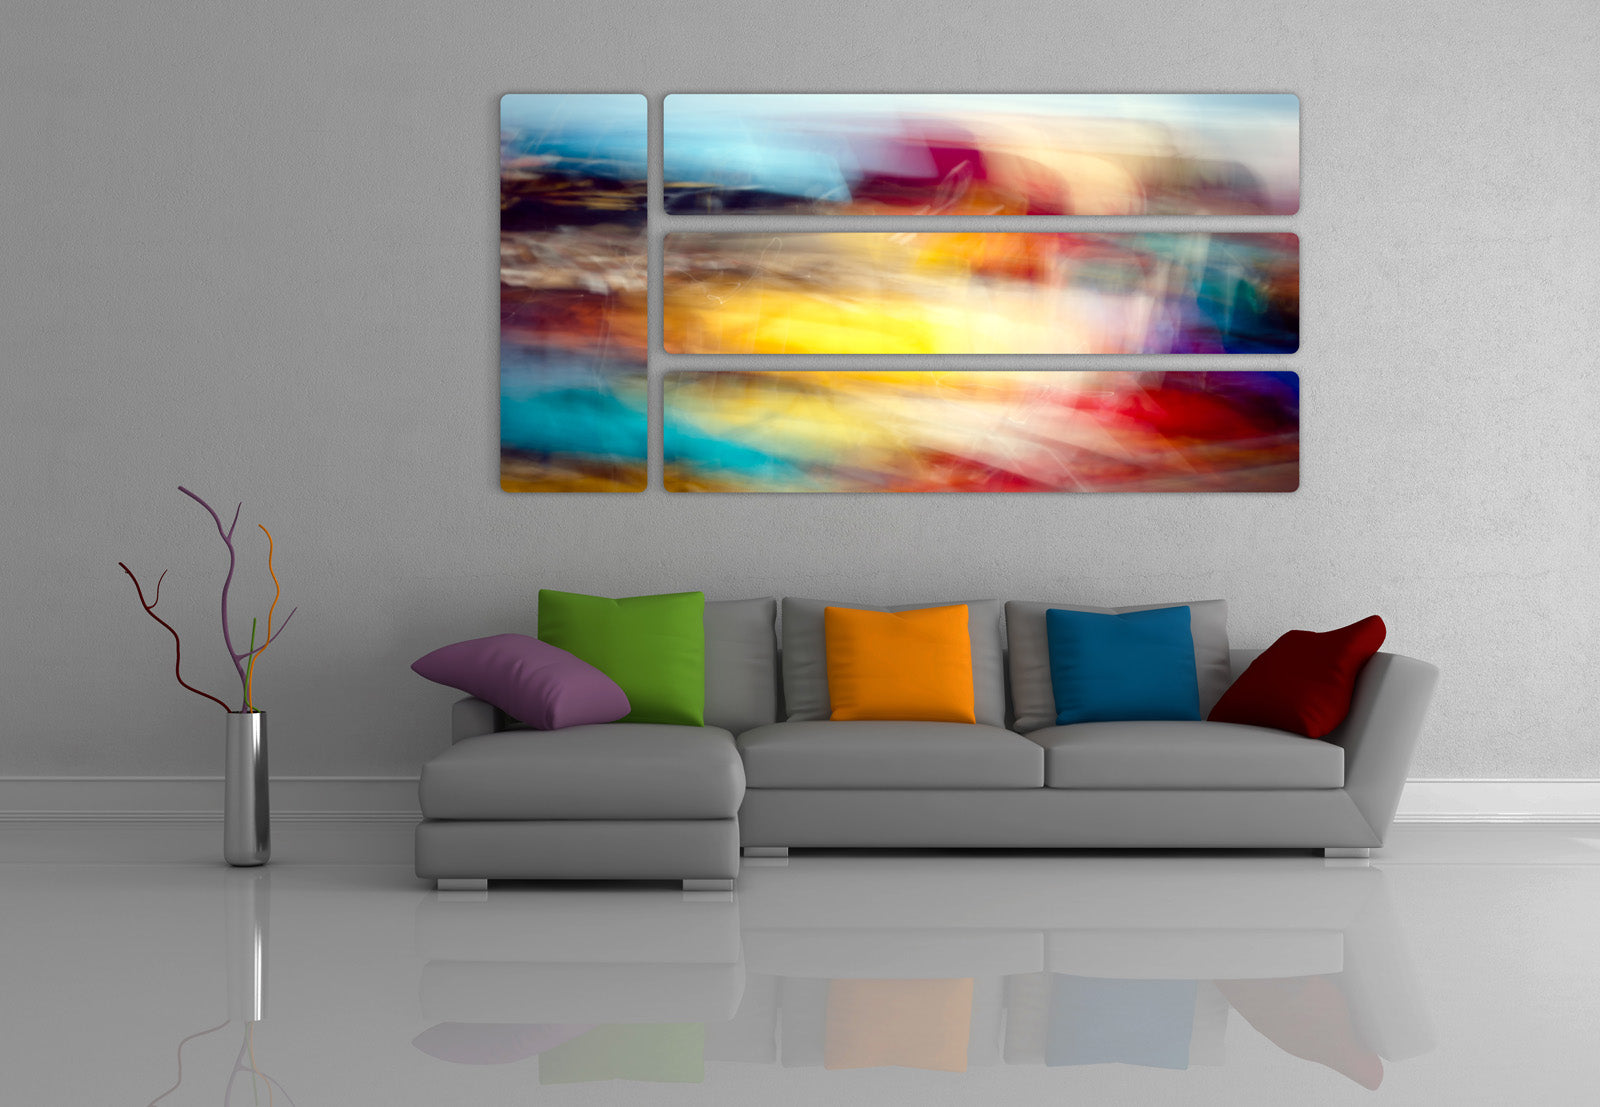 Living room wall design 2 alexei rebrov art Design 2 decor